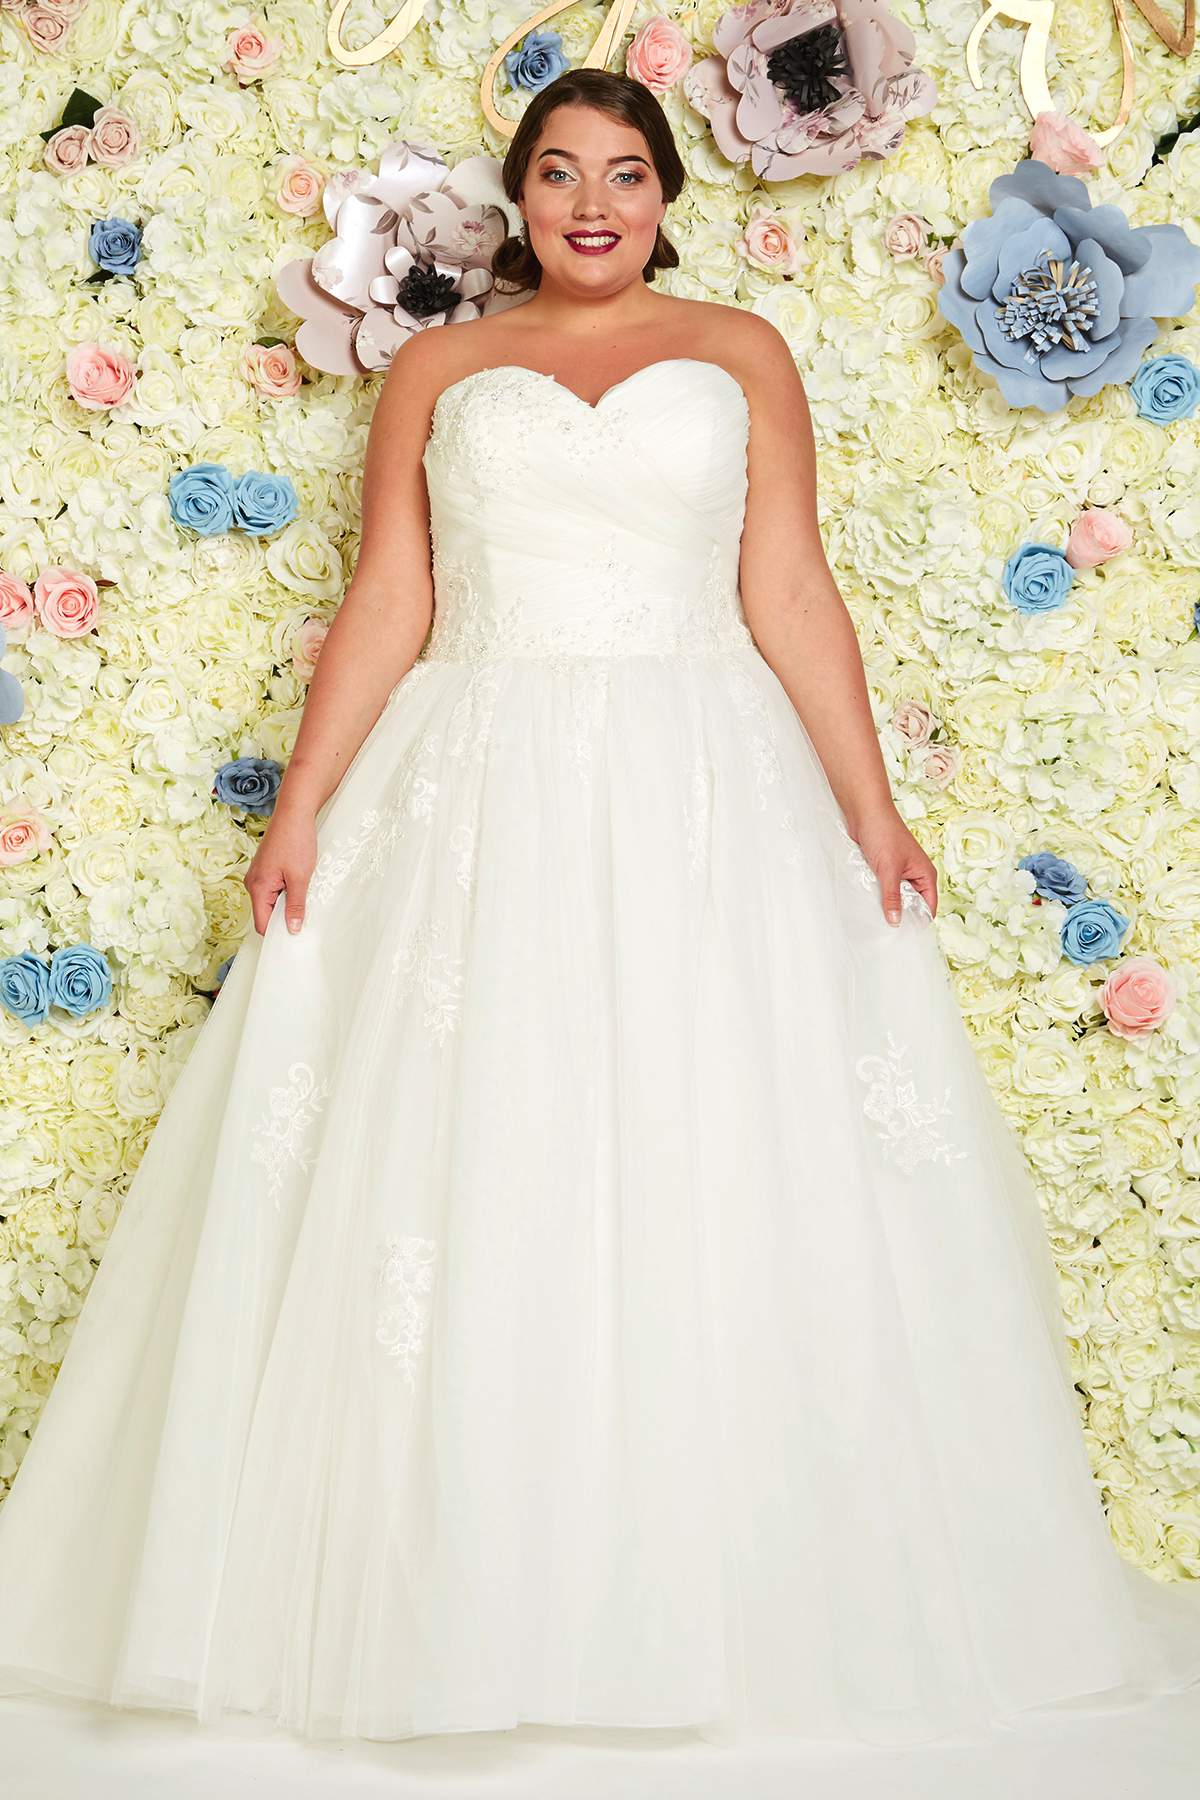 Old Fashioned Party Dresses San Diego Motif - Colorful Wedding Dress ...